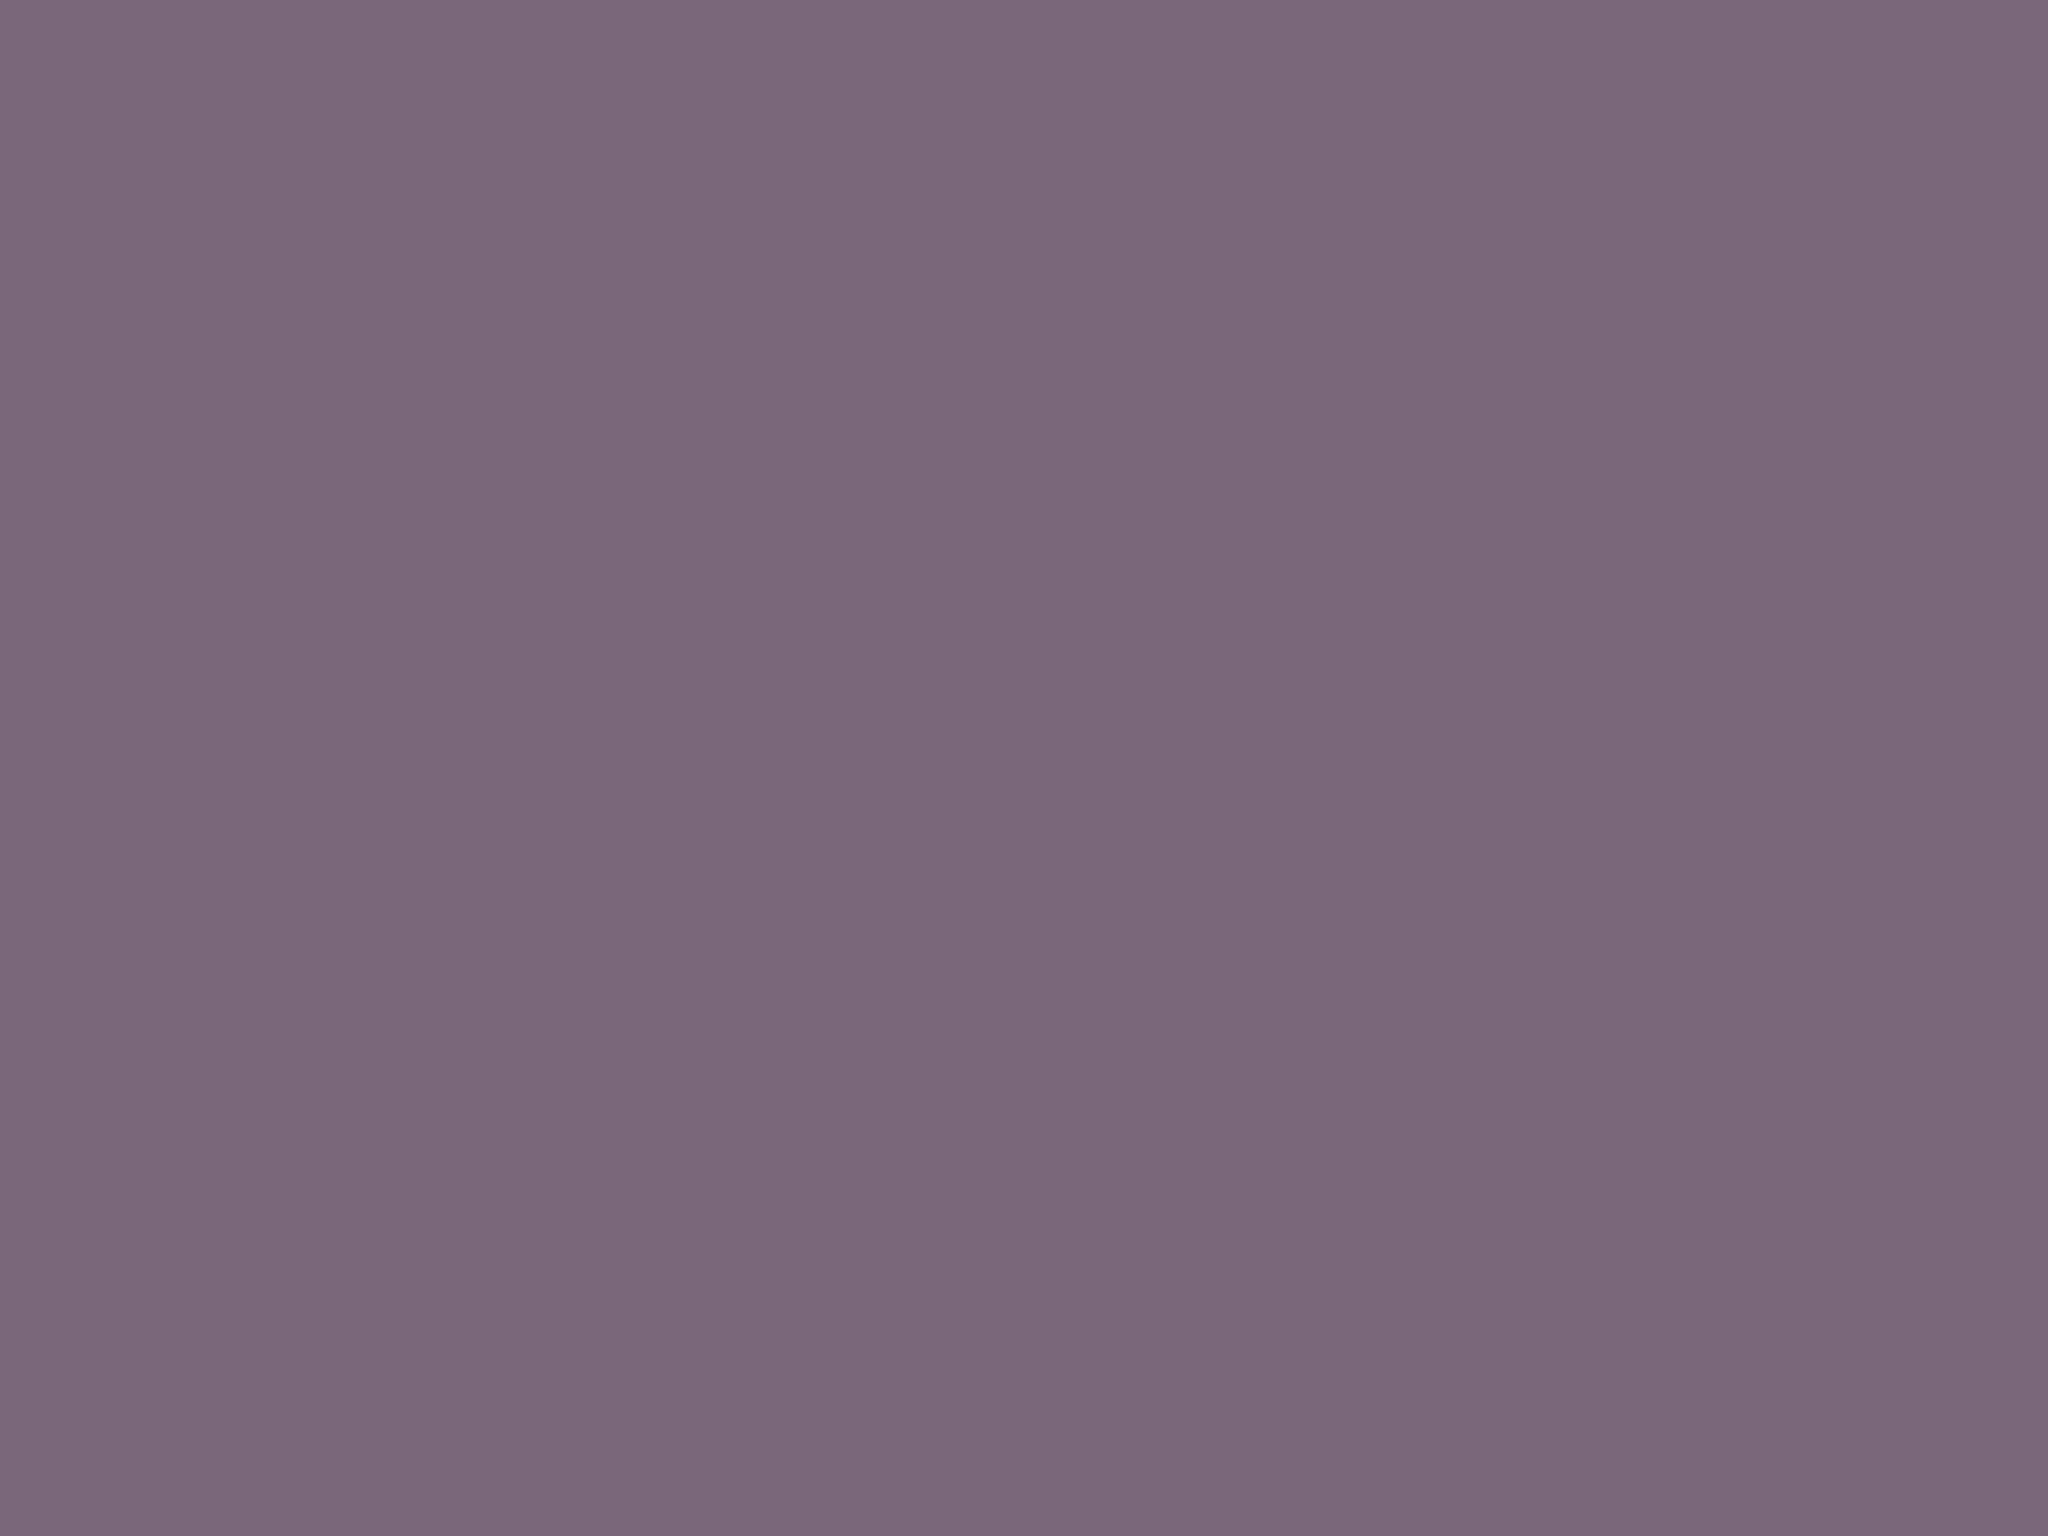 2048x1536 Old Lavender Solid Color Background